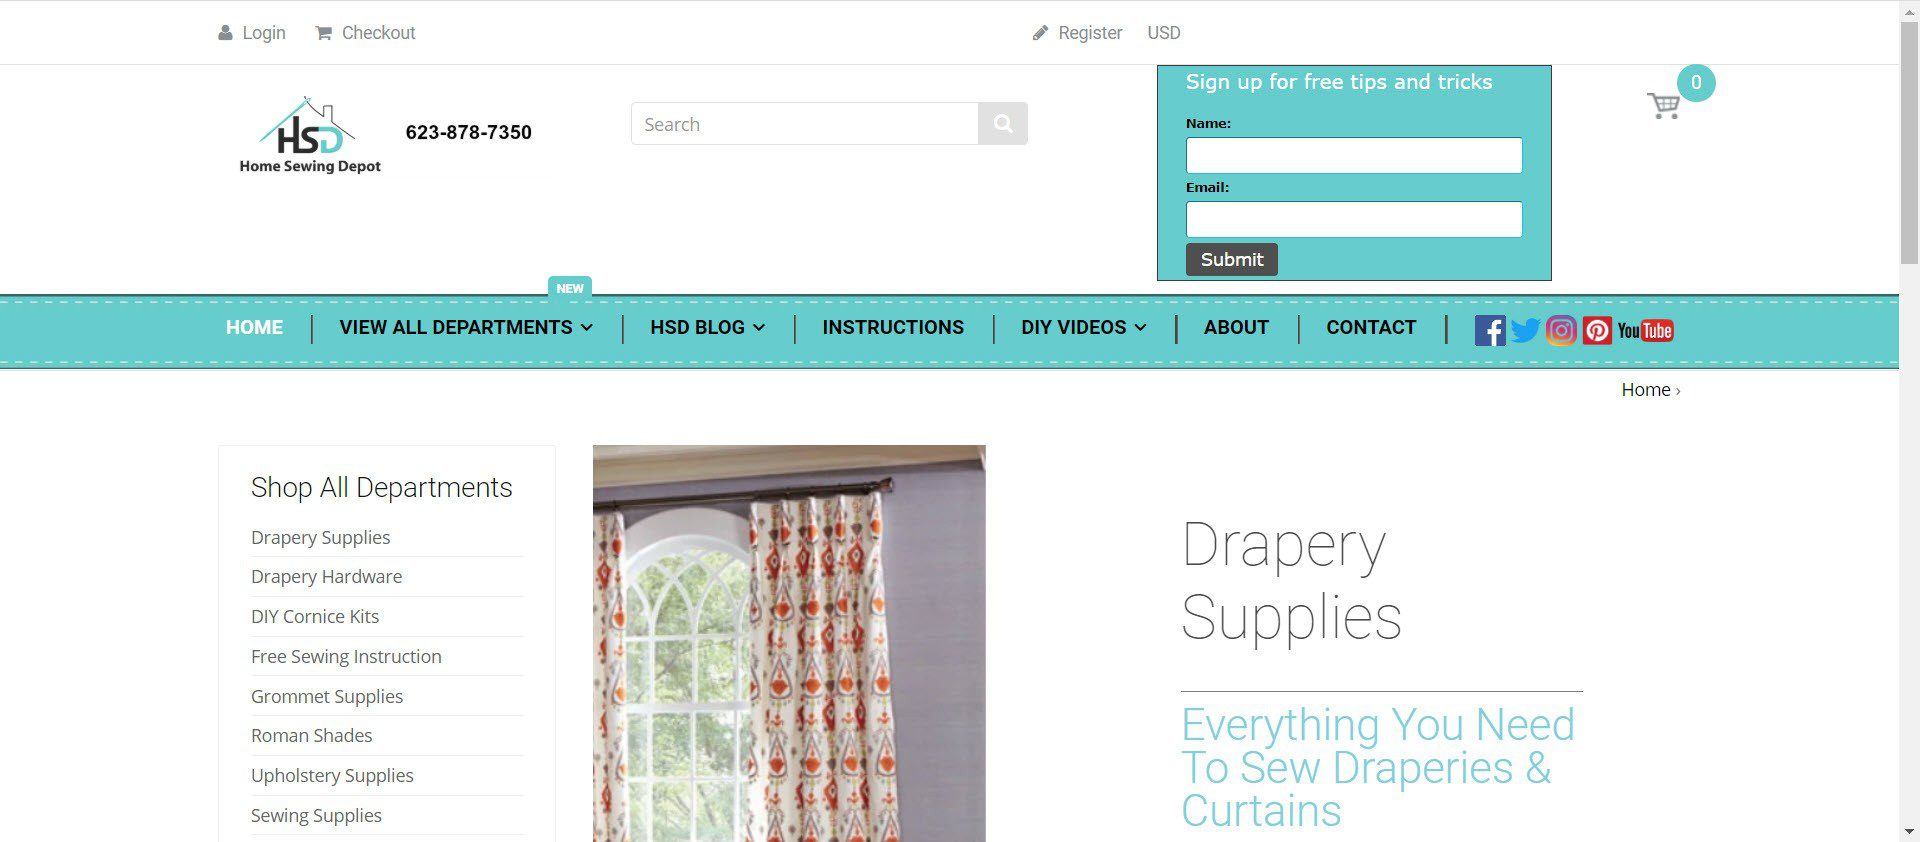 sewing affiliate programs - Home Sewing Depot